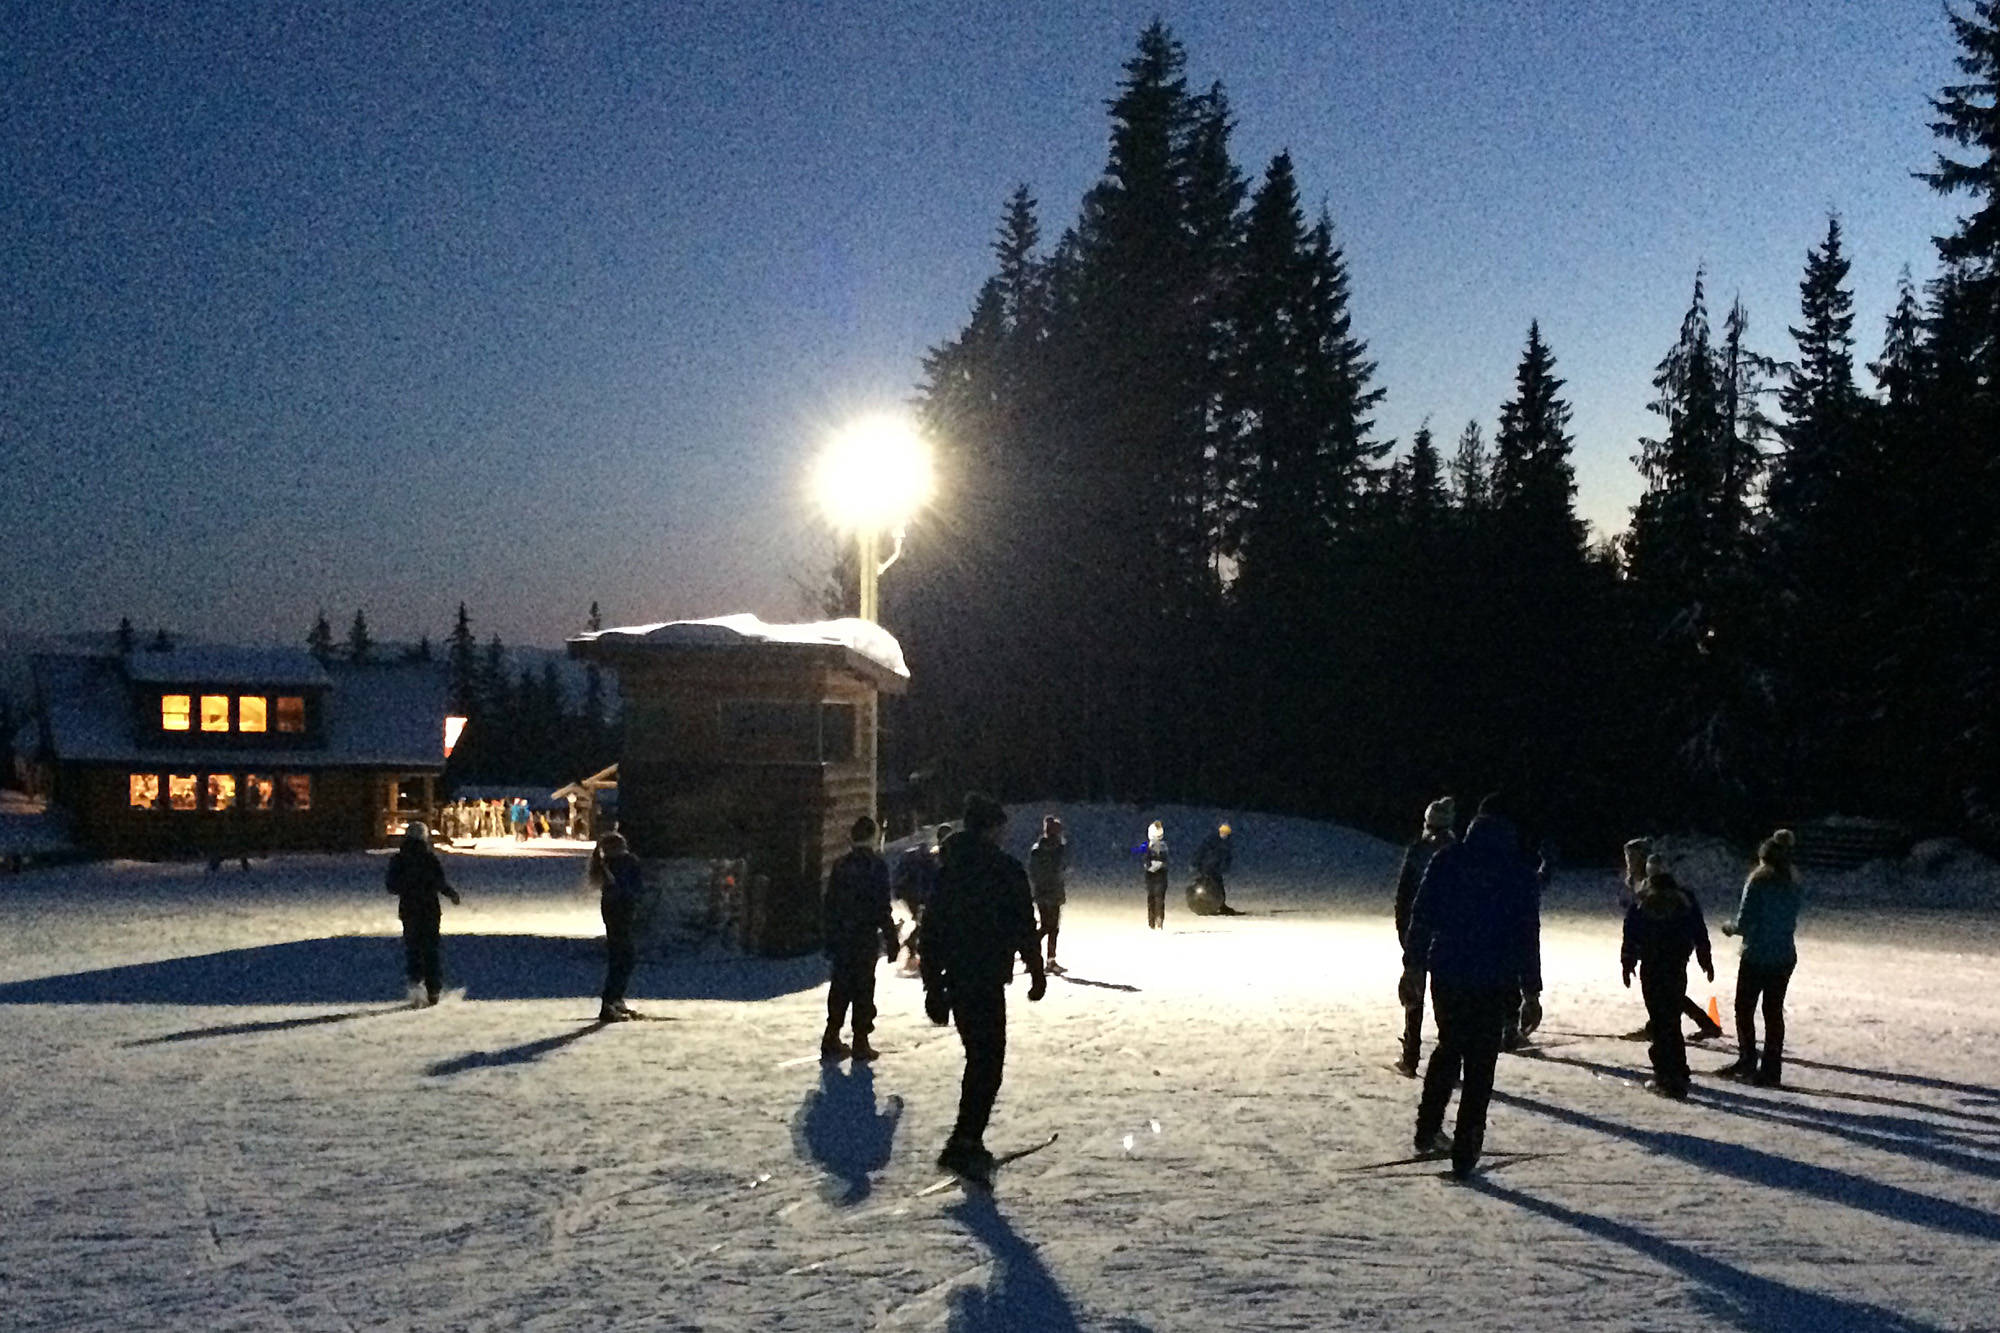 Skiers at Larch Hills near Salmon Arm aren't able to stray far from the chalet and the nearby light once the sun goes down. (Photo contributed)